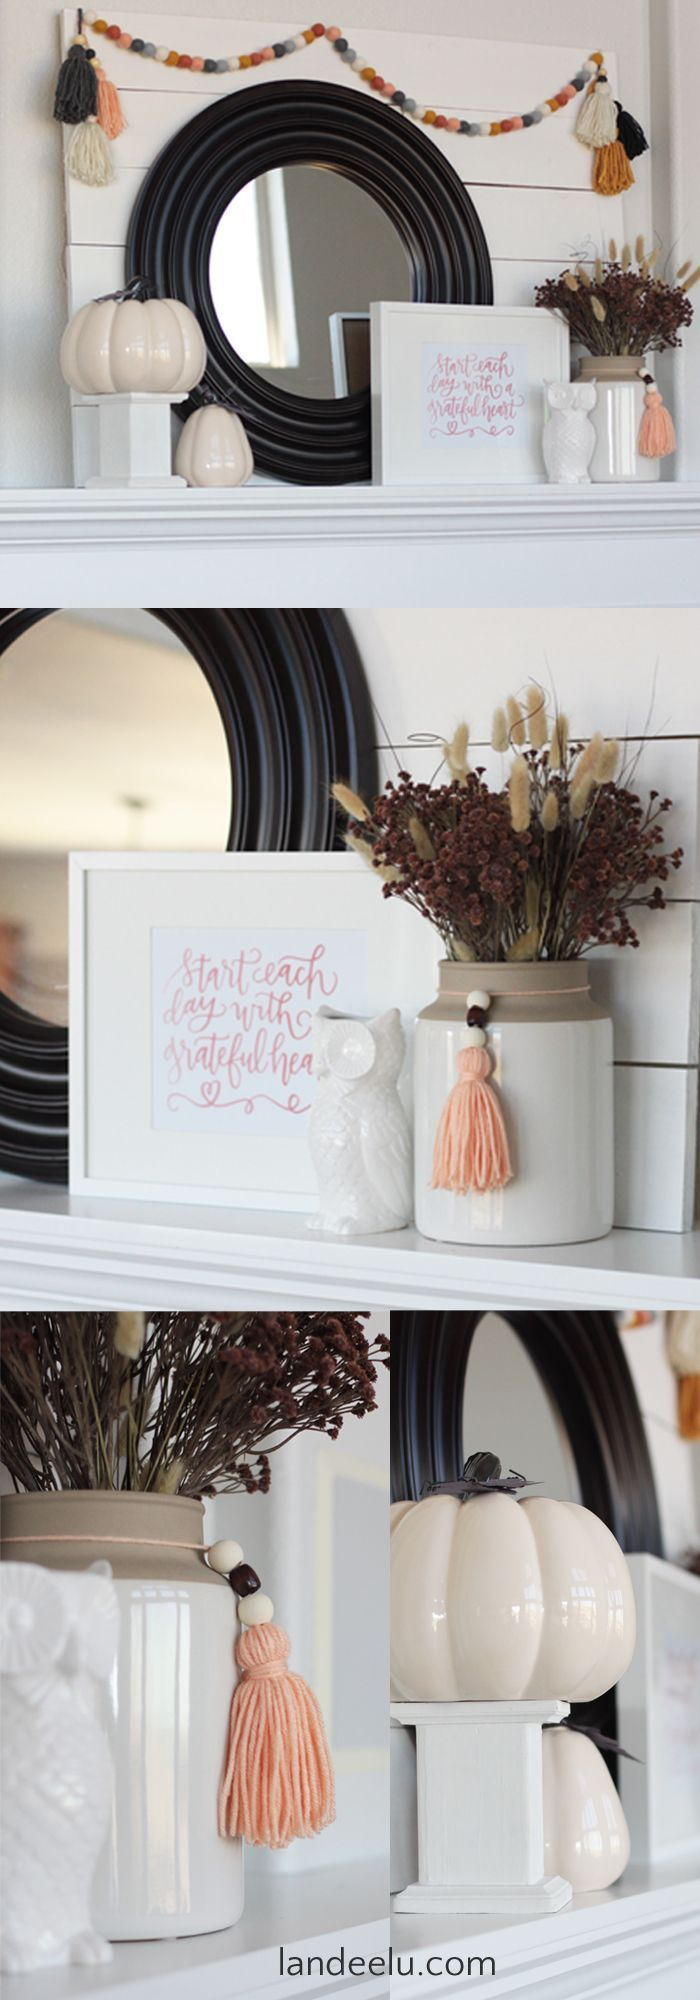 DIY Fall Mantel Decorating Ideas and Inspiration